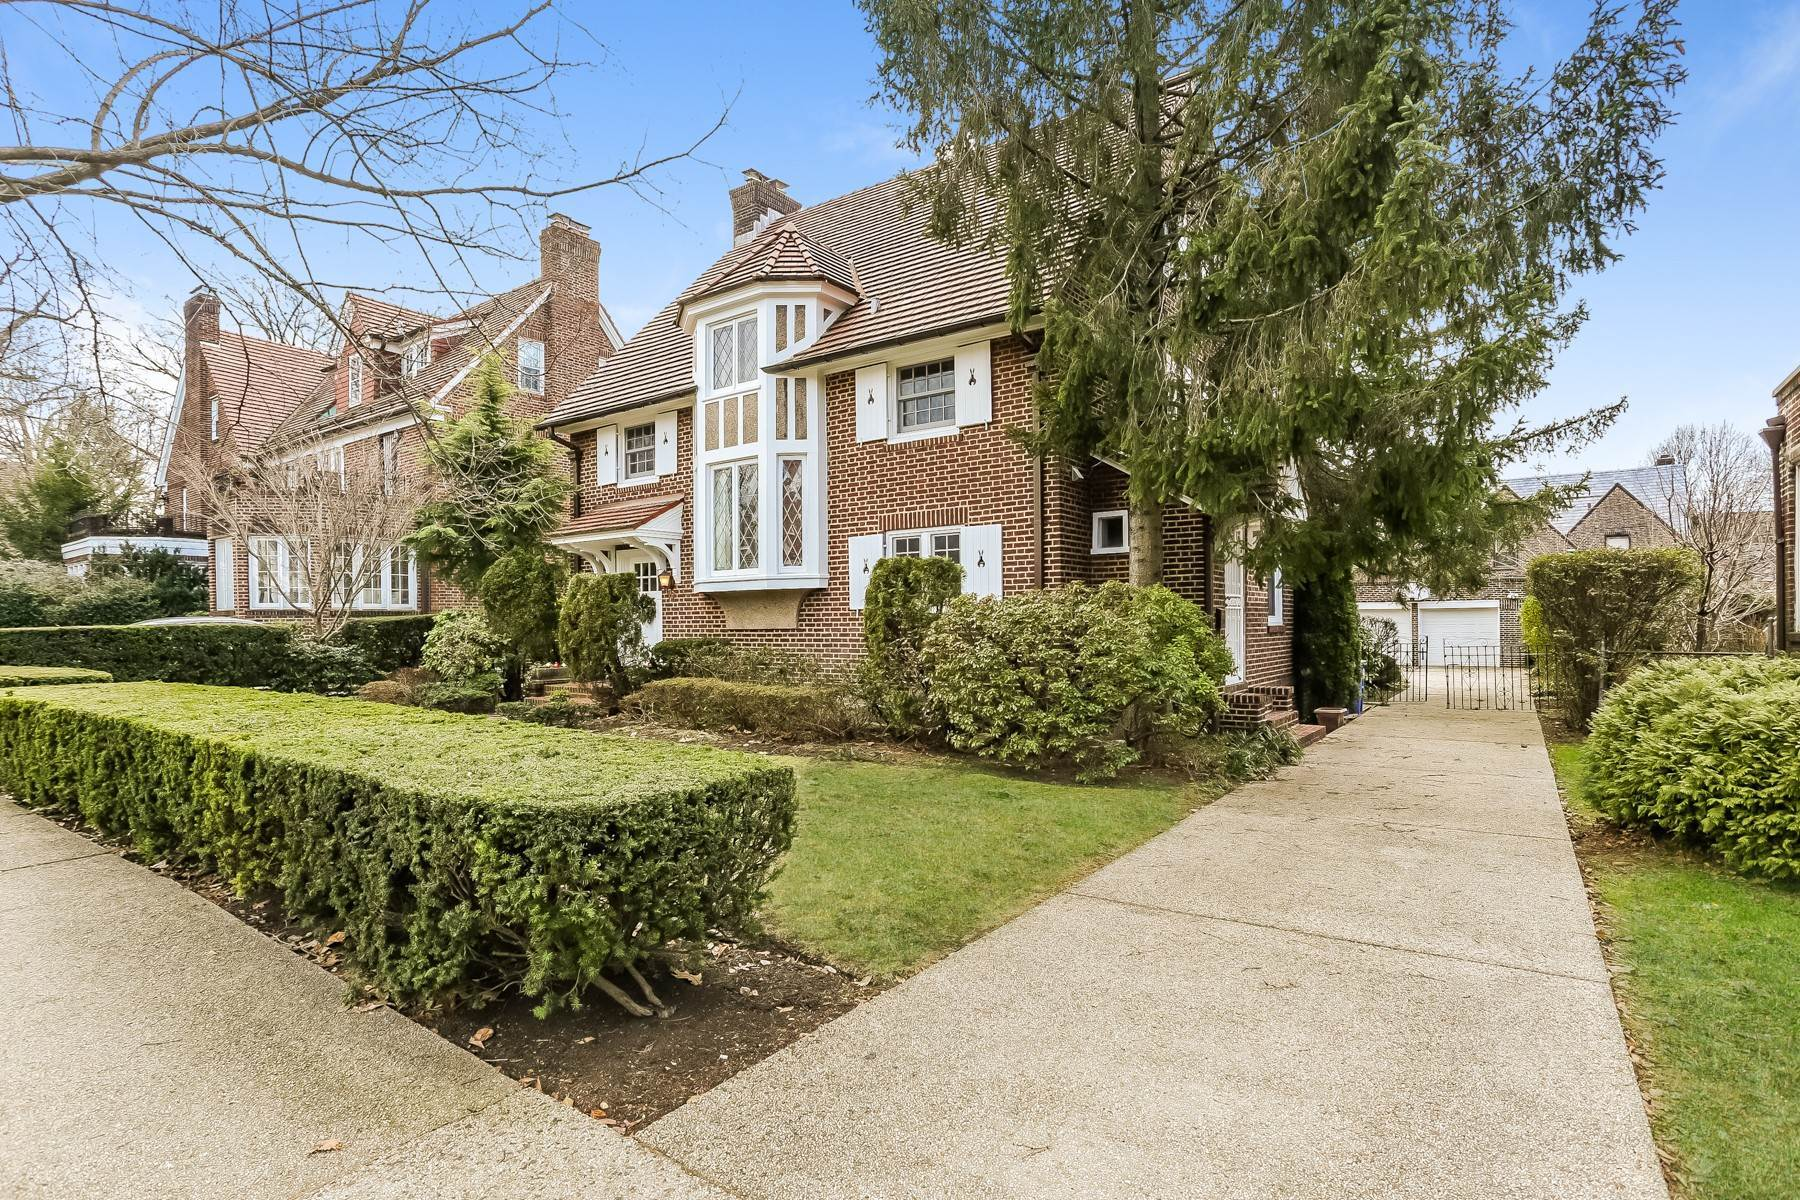 Single Family Homes for Sale at 'SPACIOUS STORYBOOK HOME, FULLY RENOVATED' 19 Groton Street, Forest Hills Gardens, Forest Hills, New York 11375 United States